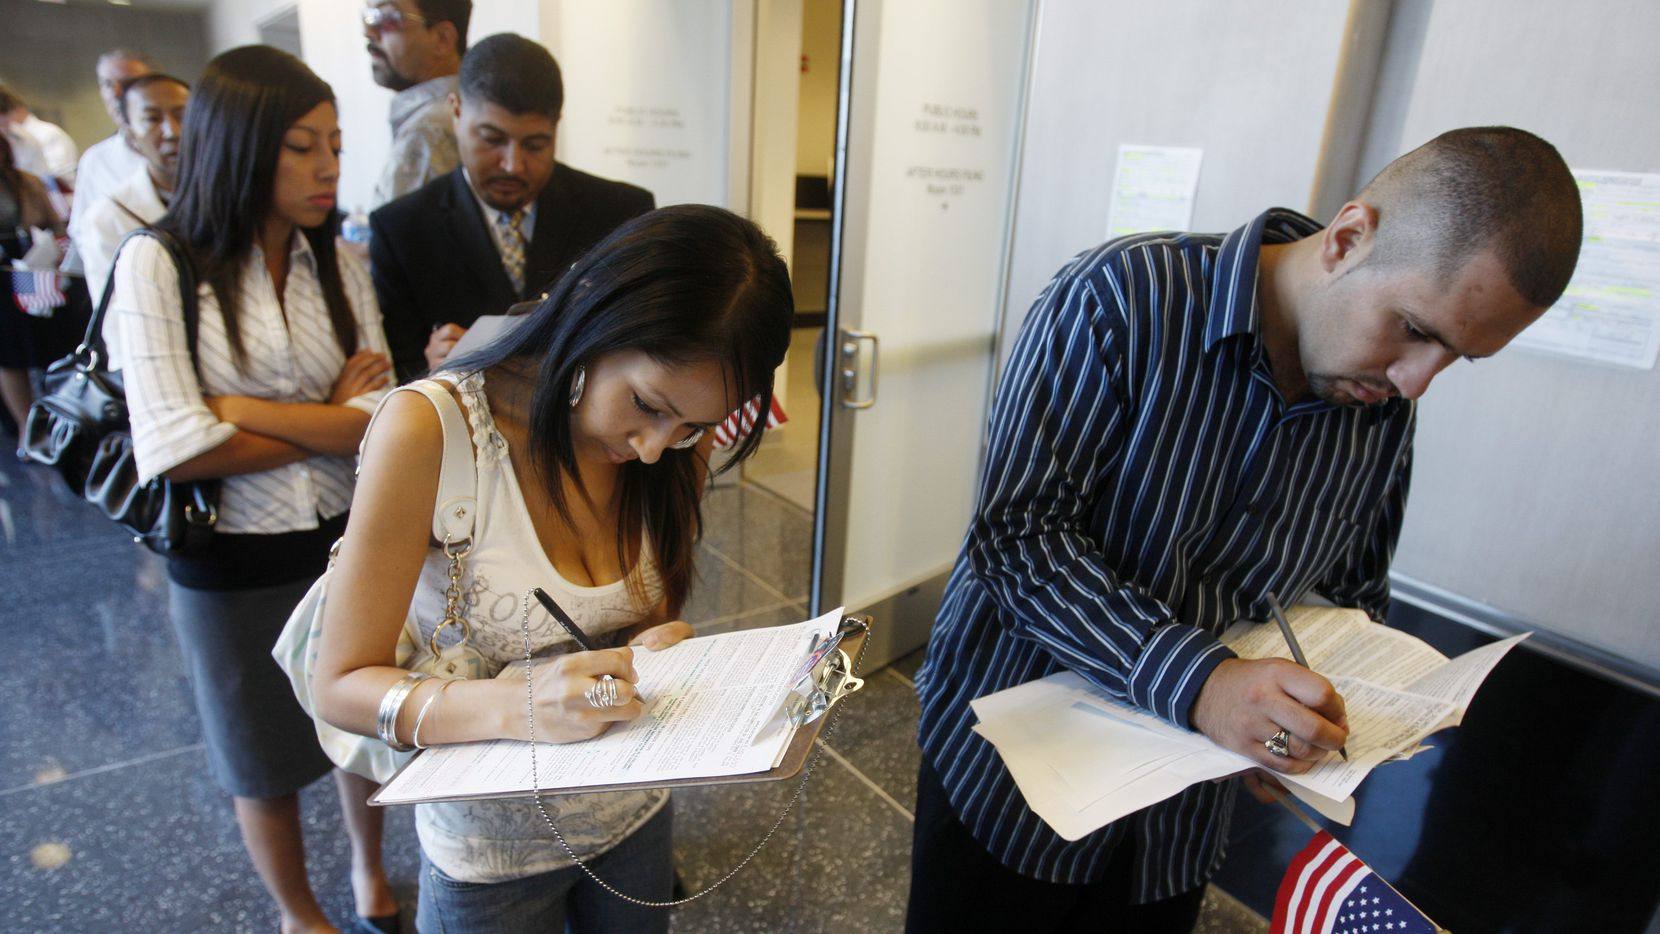 New U.S. citizens fill out voter registration forms. (File Photo/The Associated Press)